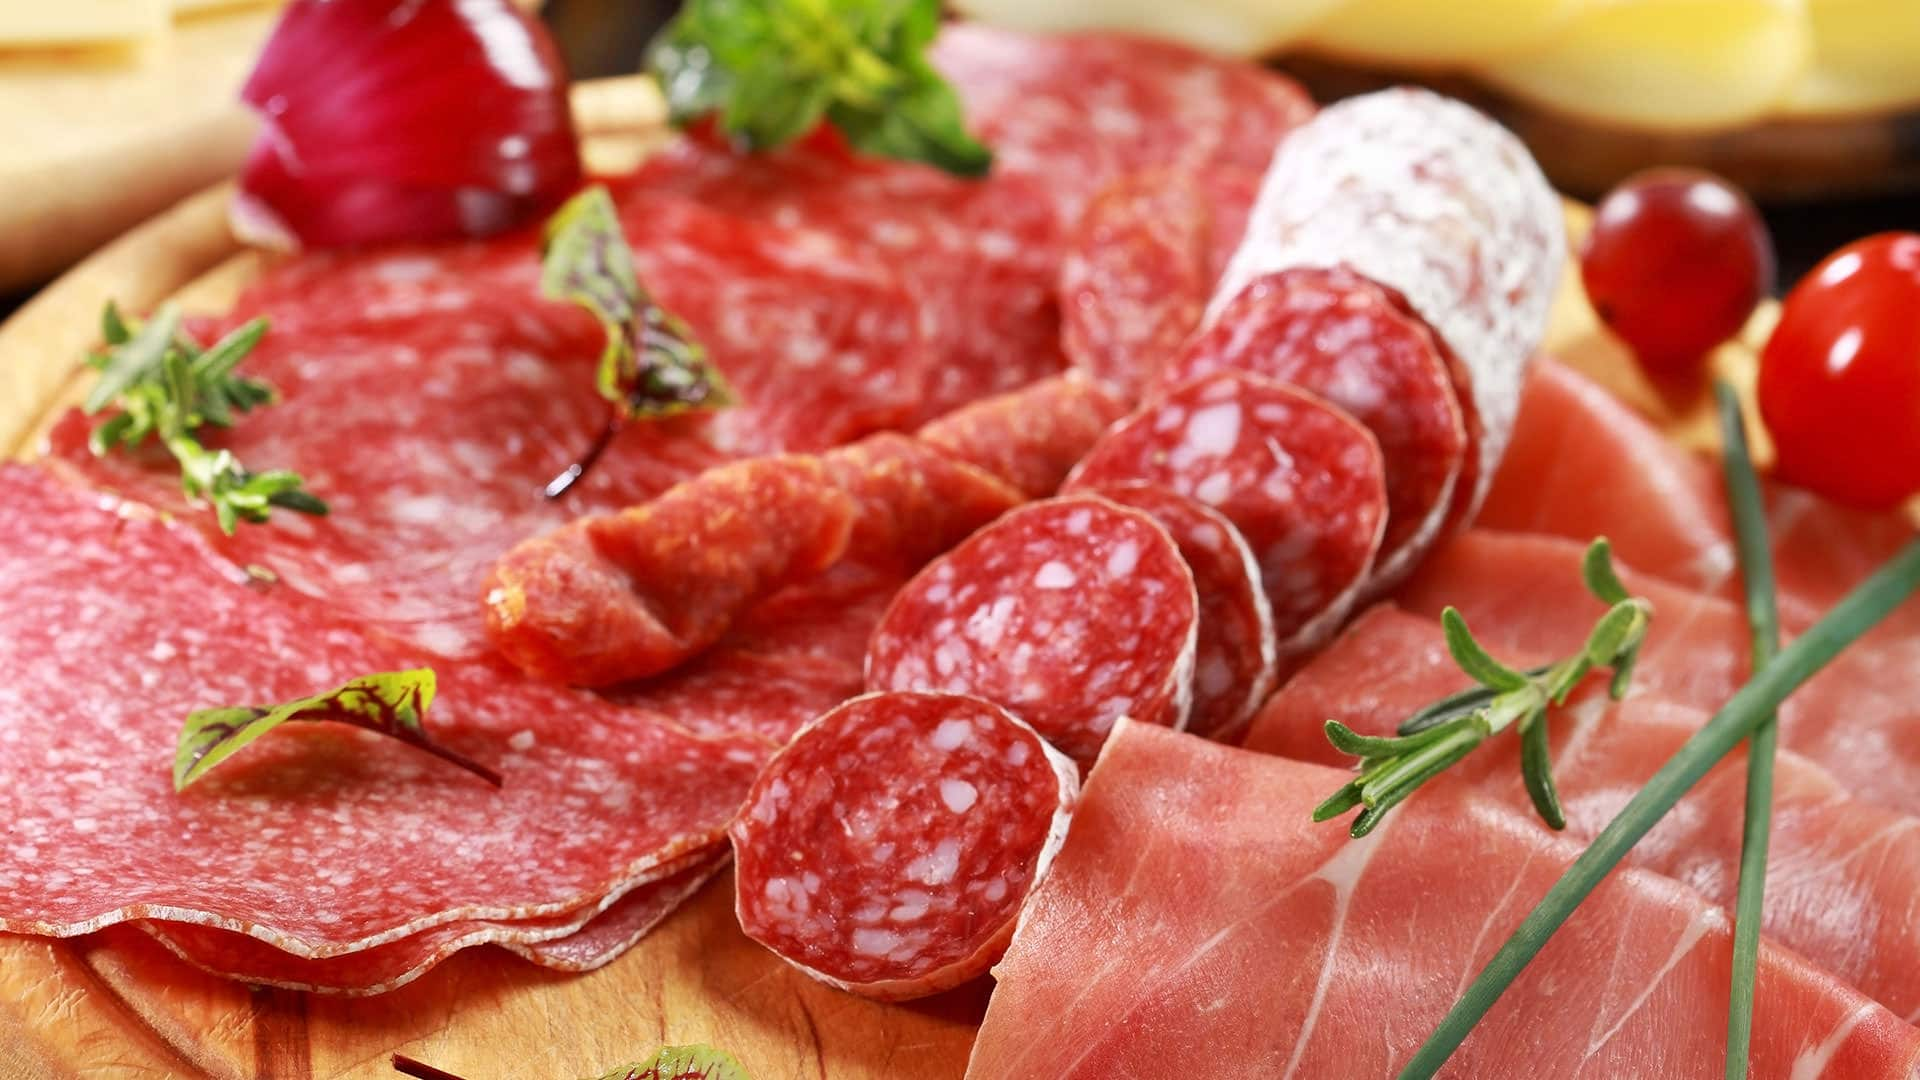 Sliced salami on cutting board